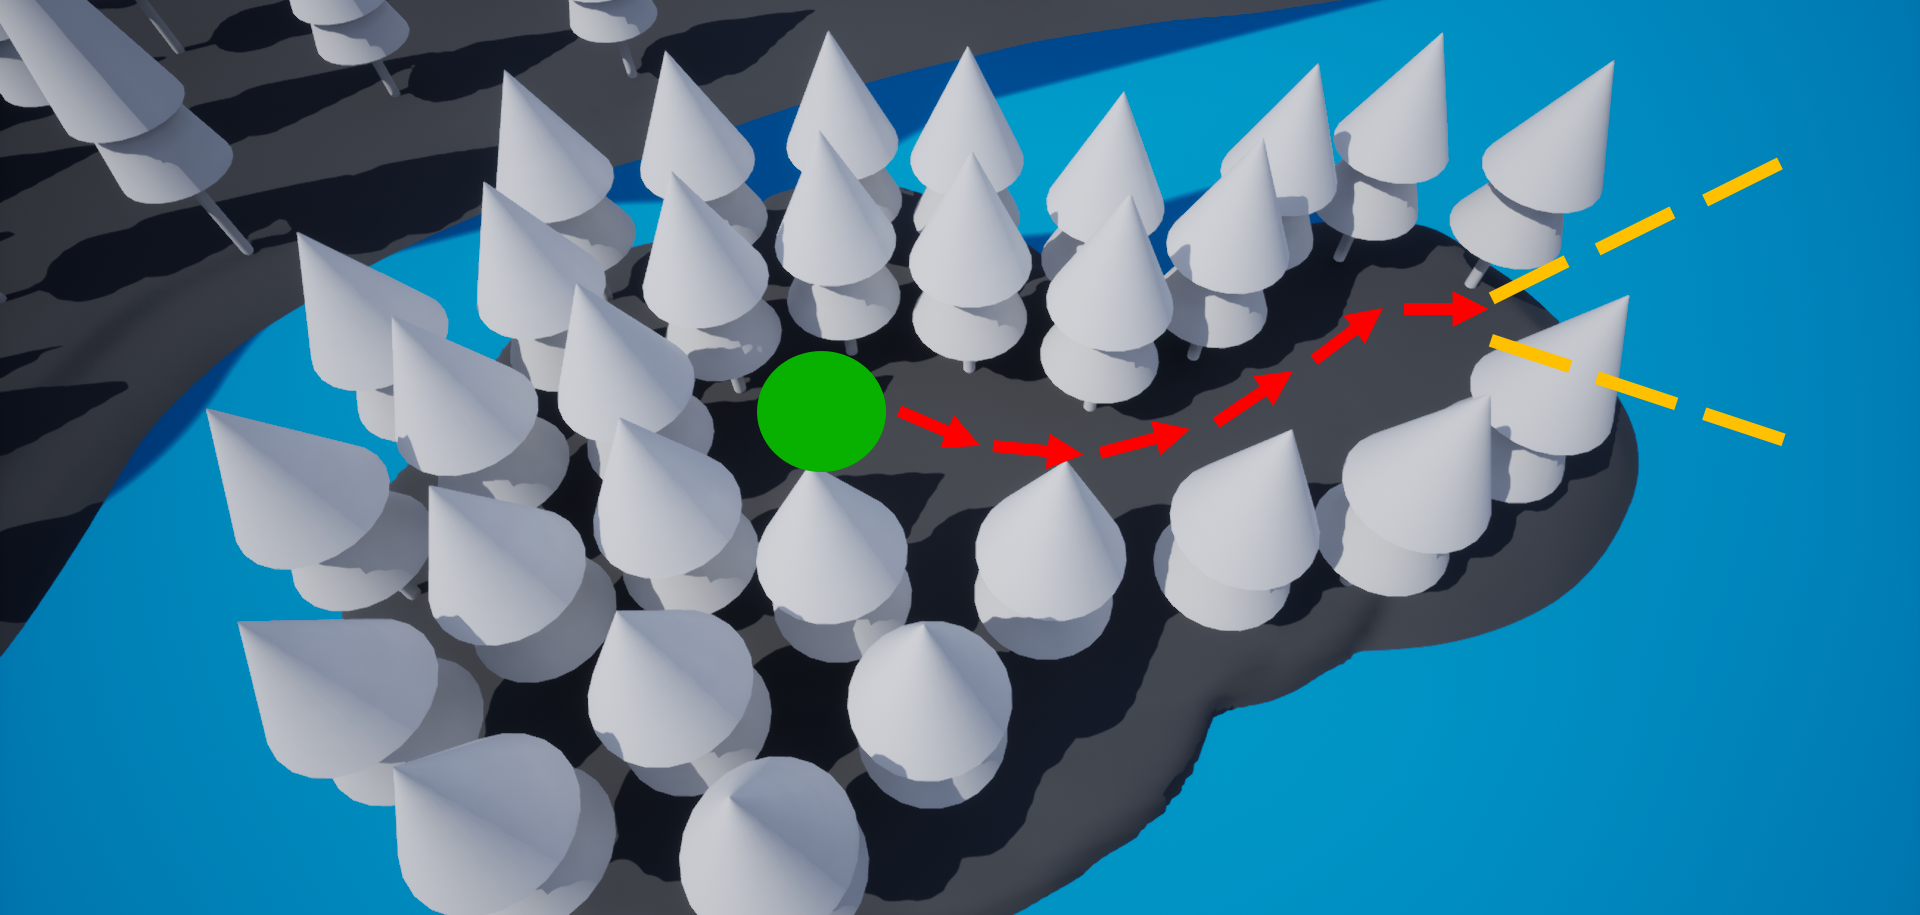 Player spawns within a confined space, following a narrow path until an opening presents the location of their objective